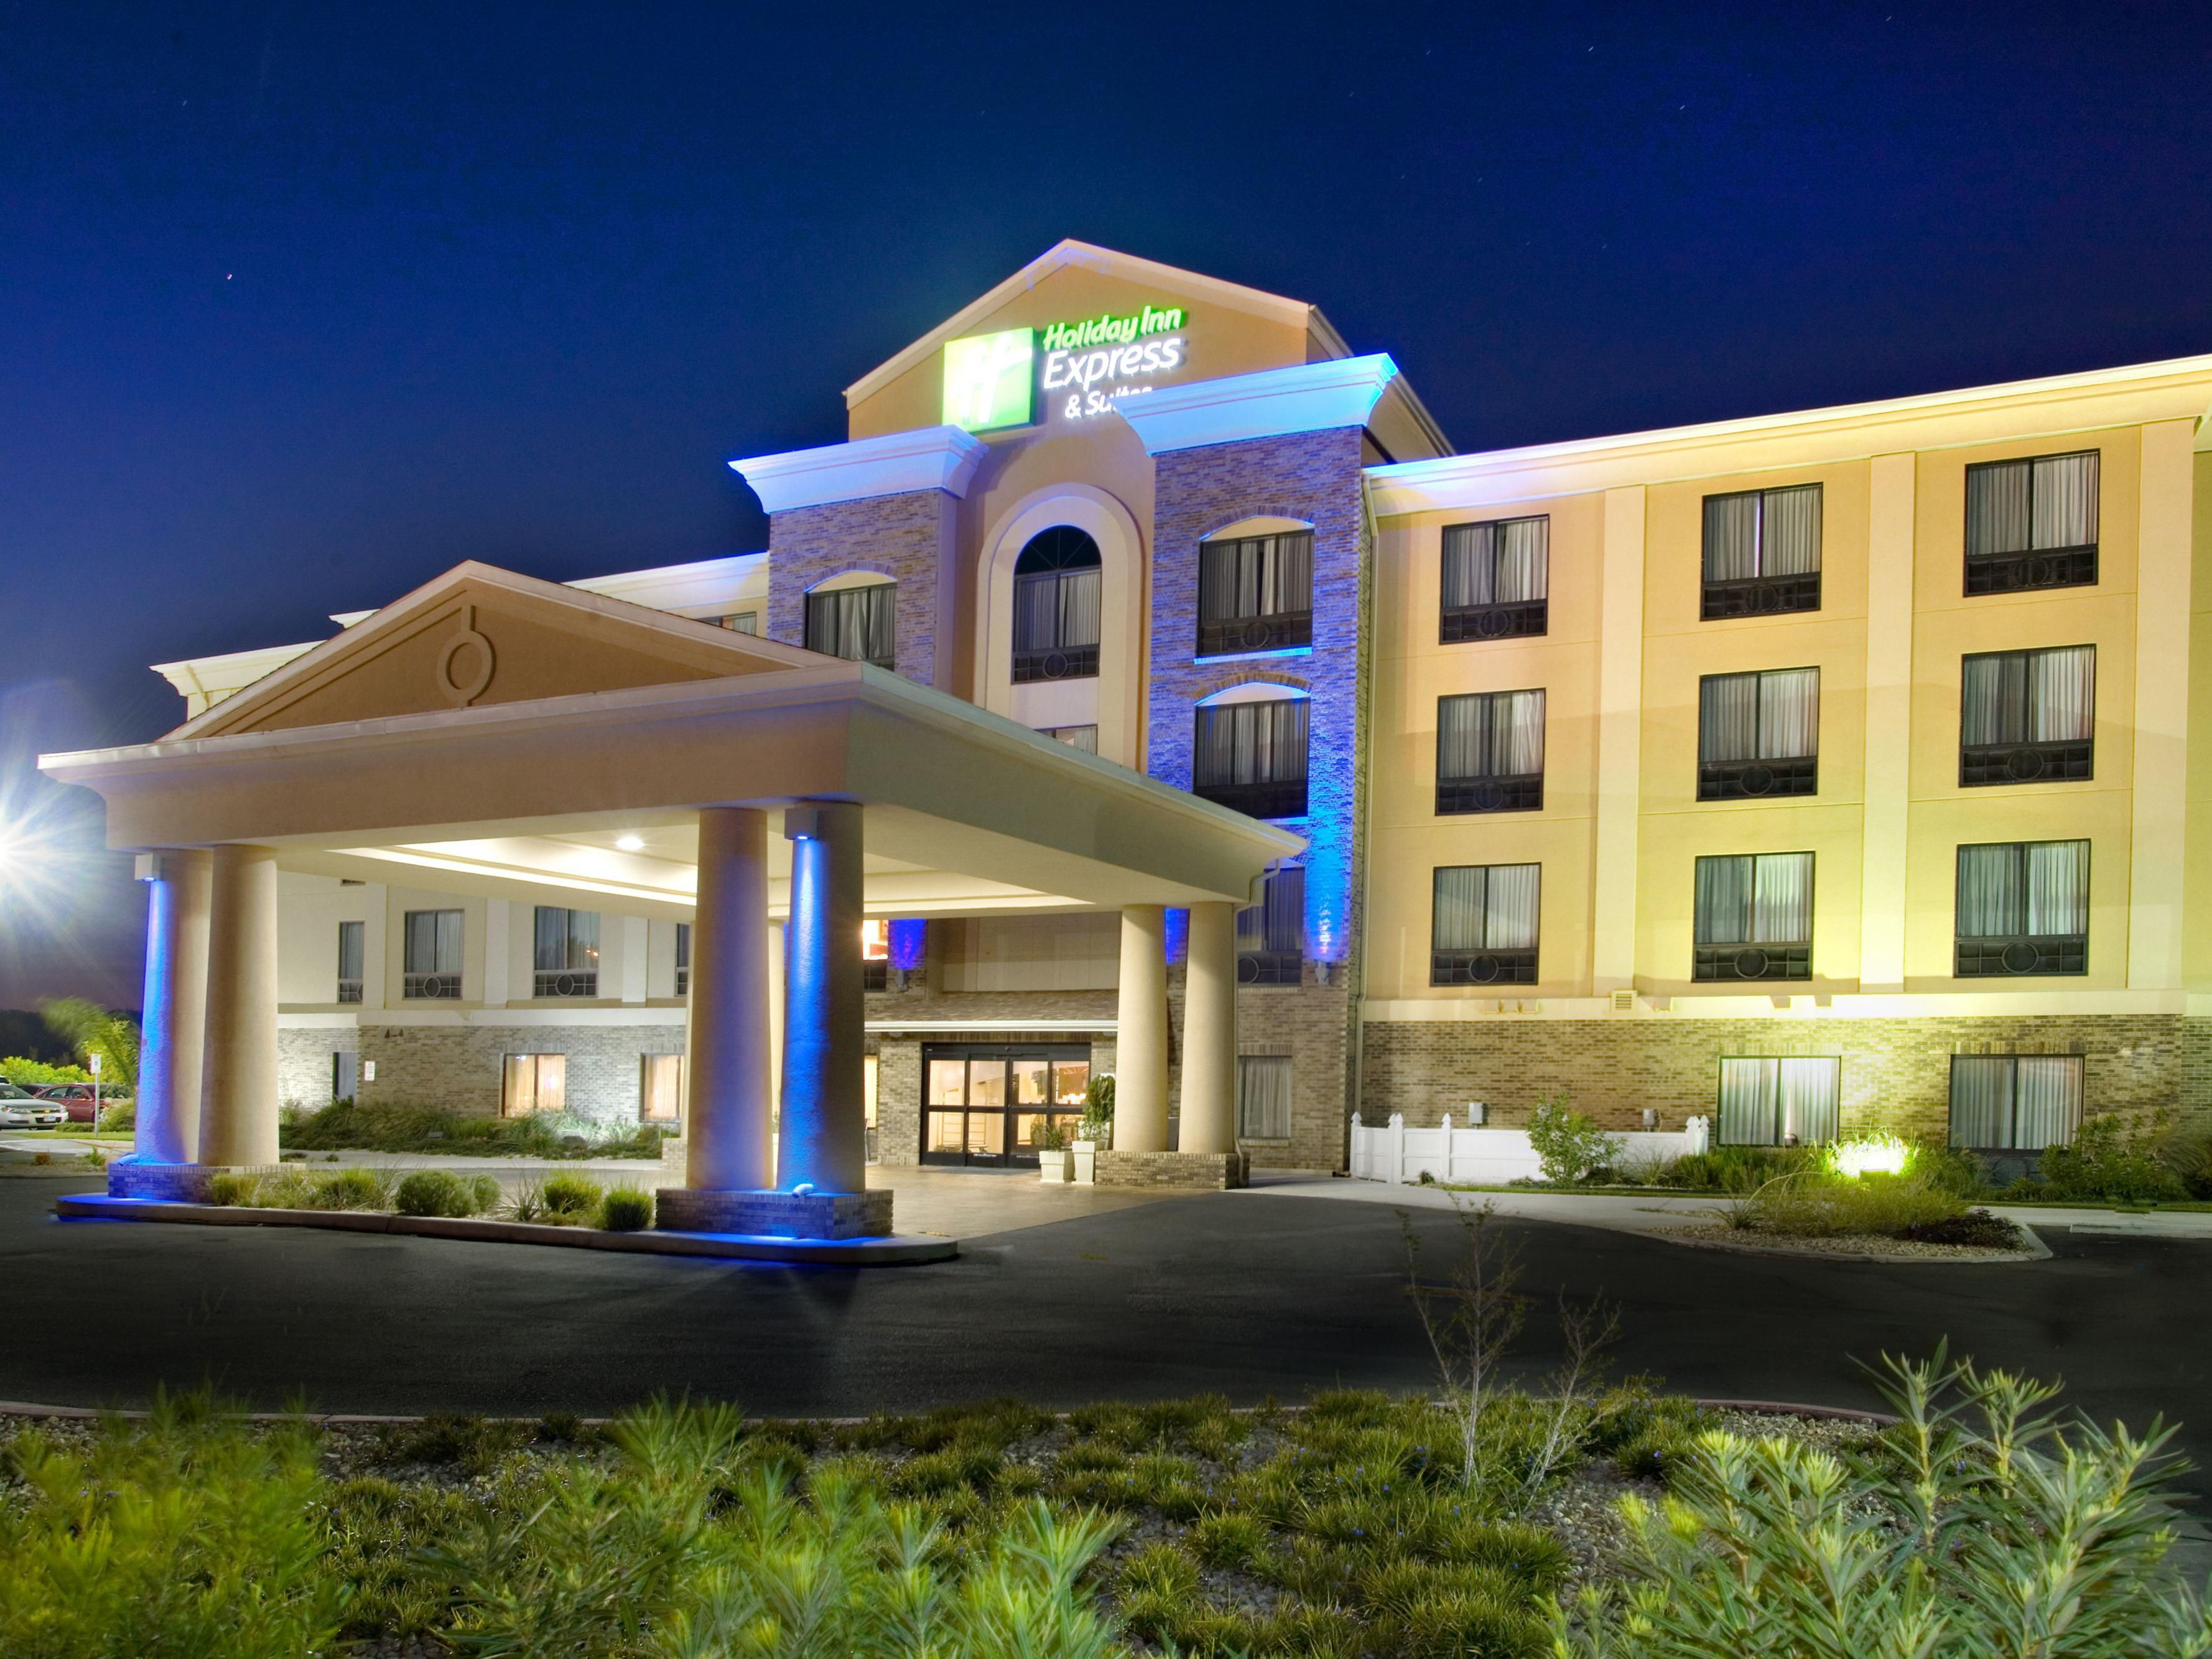 View of the Holiday Inn Express Selma in the evening